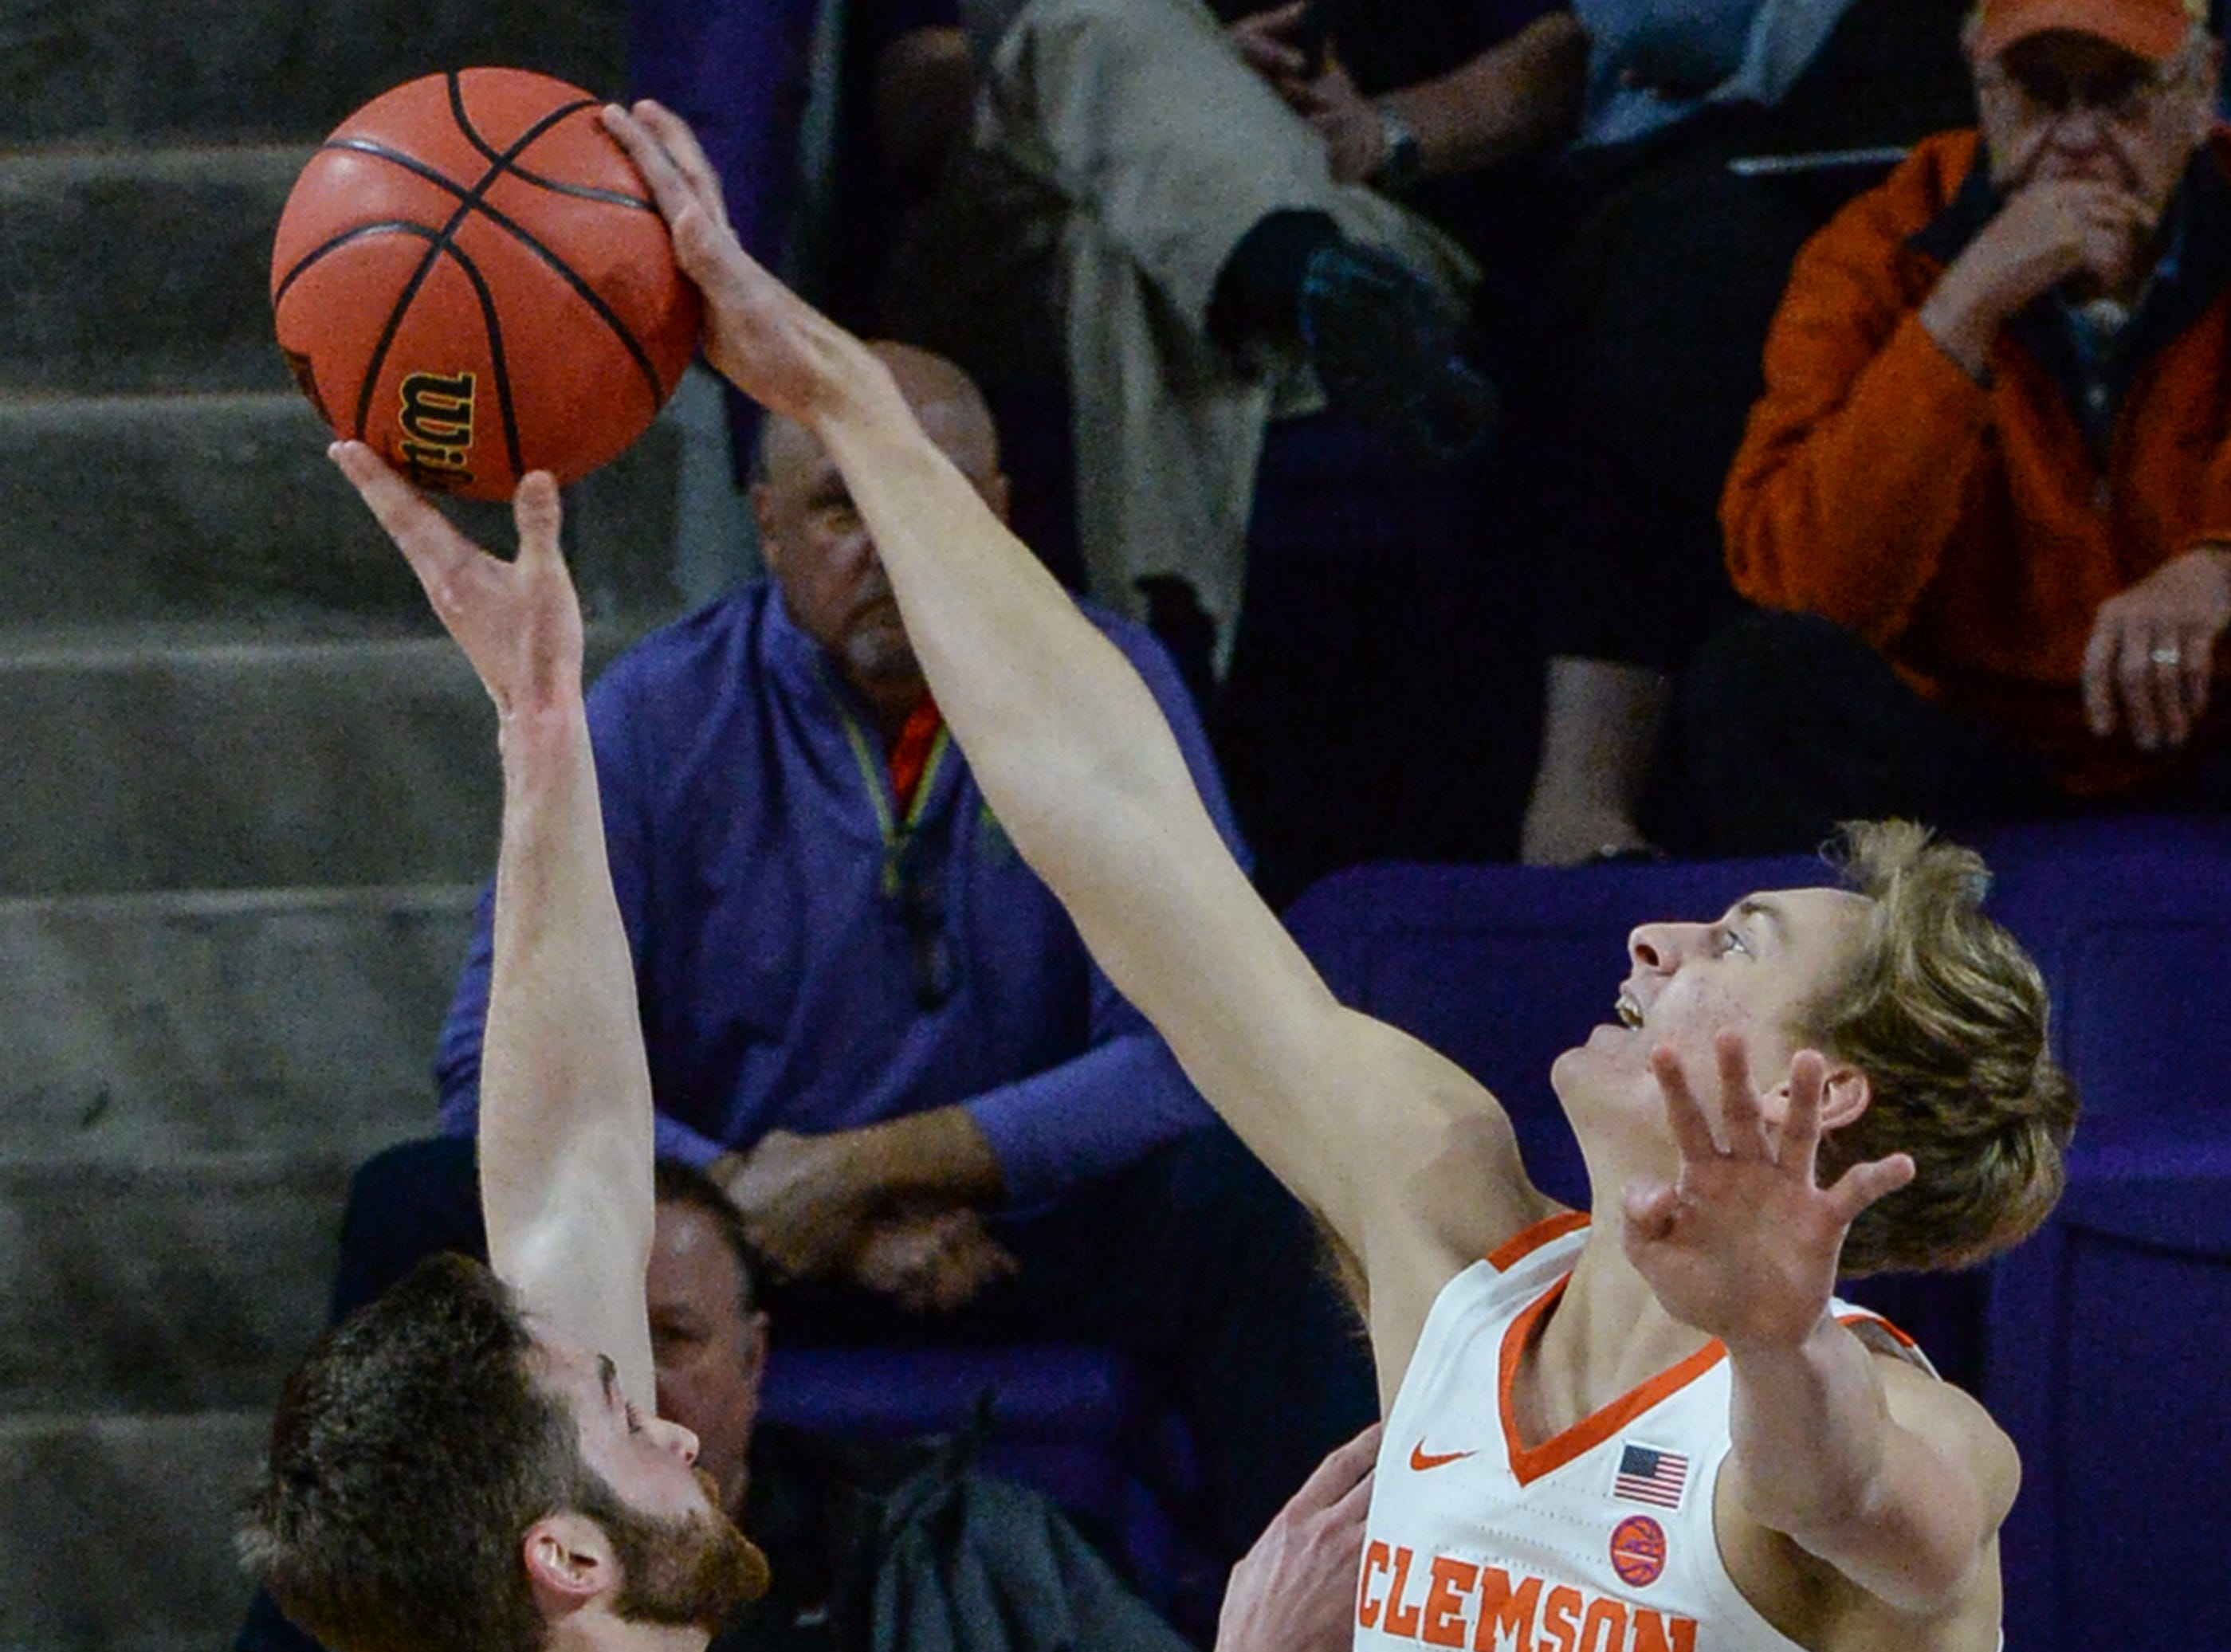 Clemson forward Hunter Tyson(5) blocks the shot of Wright State guard Alan Vest(4) during the first half of the NIT at Littlejohn Coliseum in Clemson Tuesday, March 19, 2019.